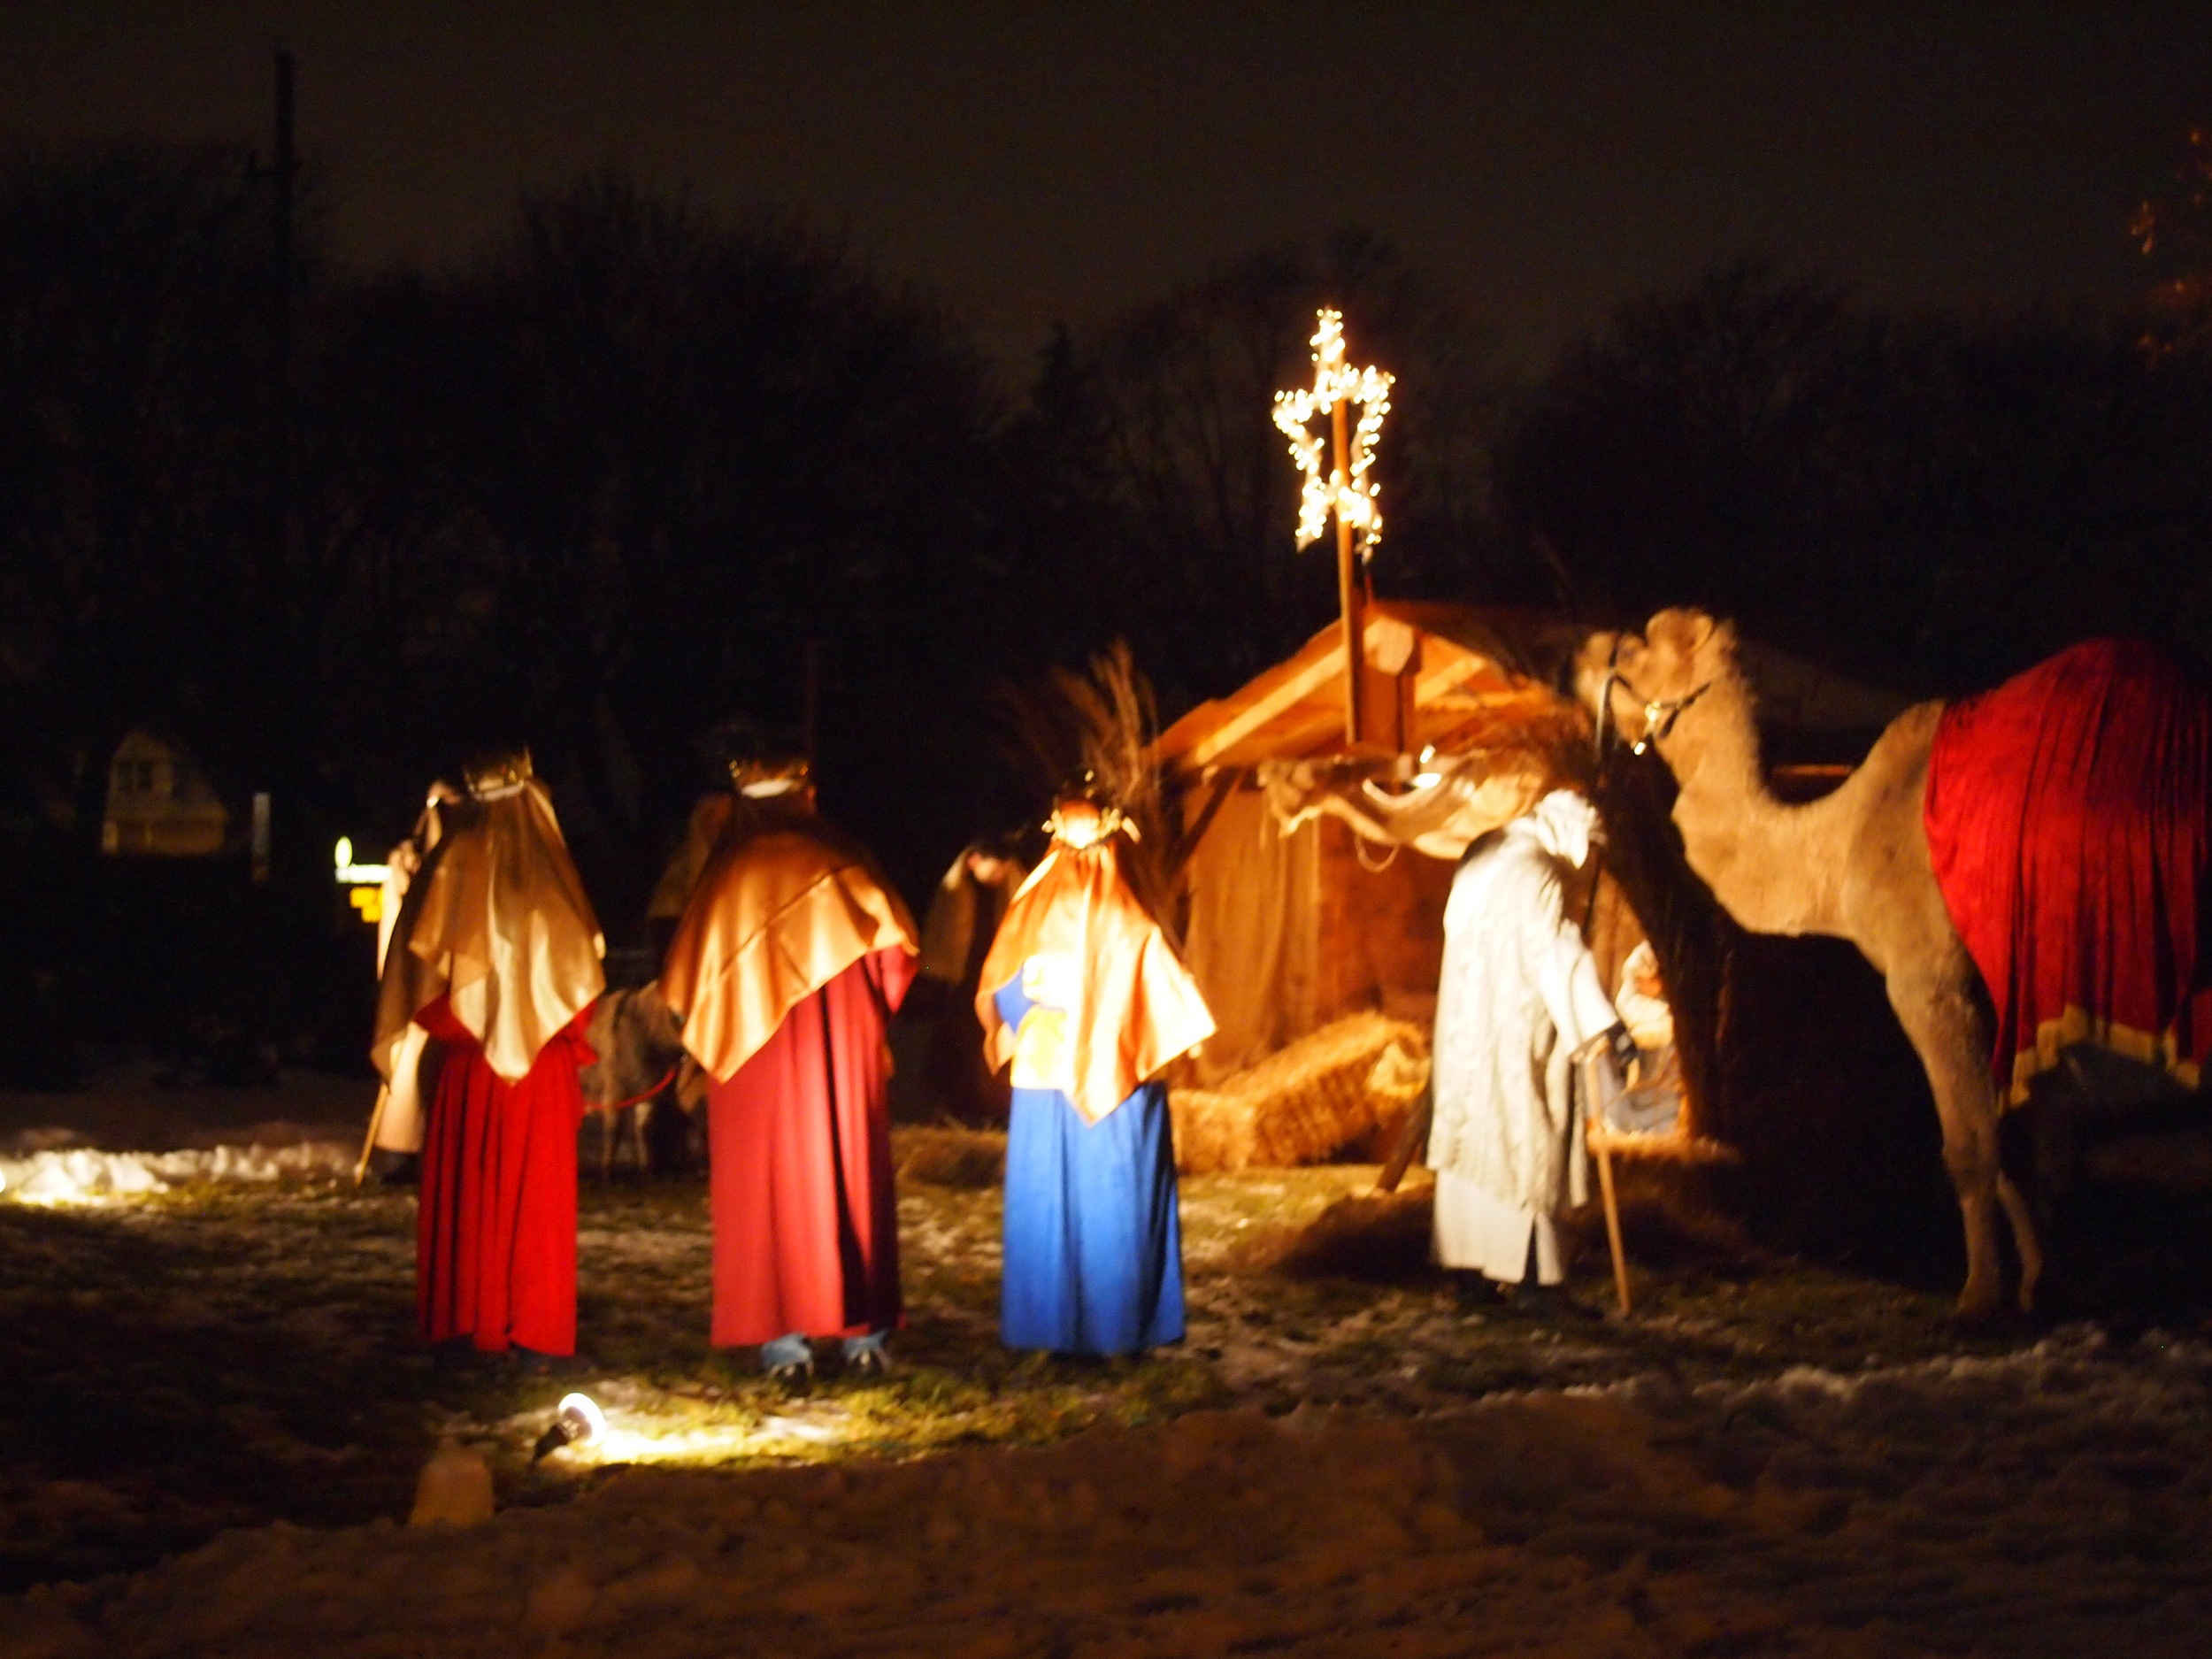 Presbyterian-Church-of-Paltine-Live-Nativity-2013-11.JPG